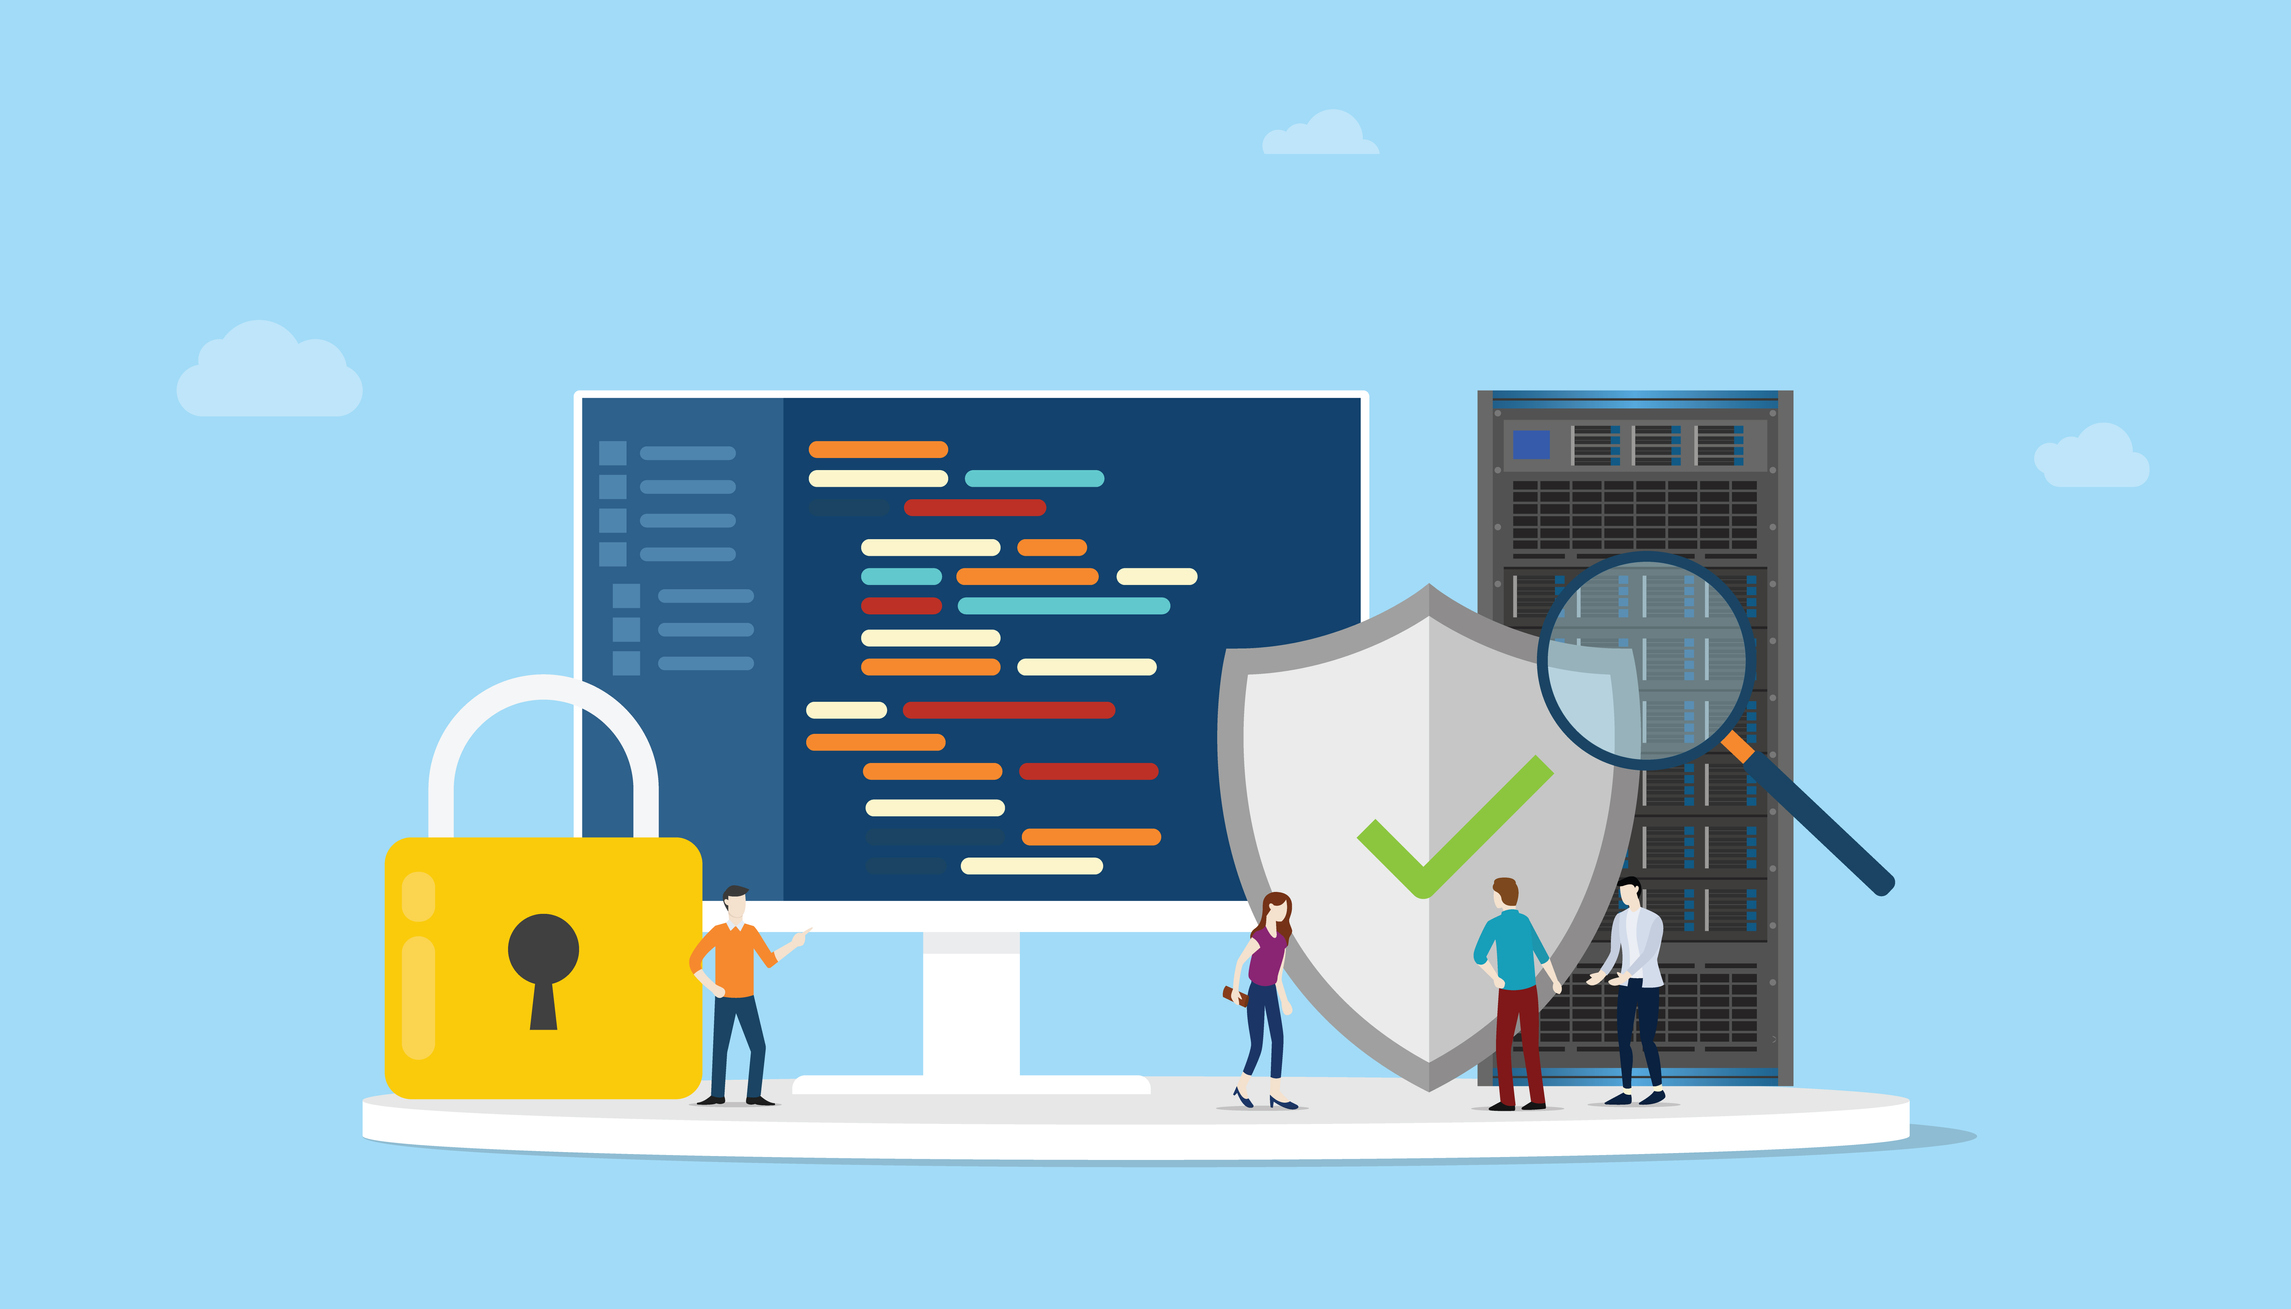 network programming security concept with code program and server safe icon - vector illustration